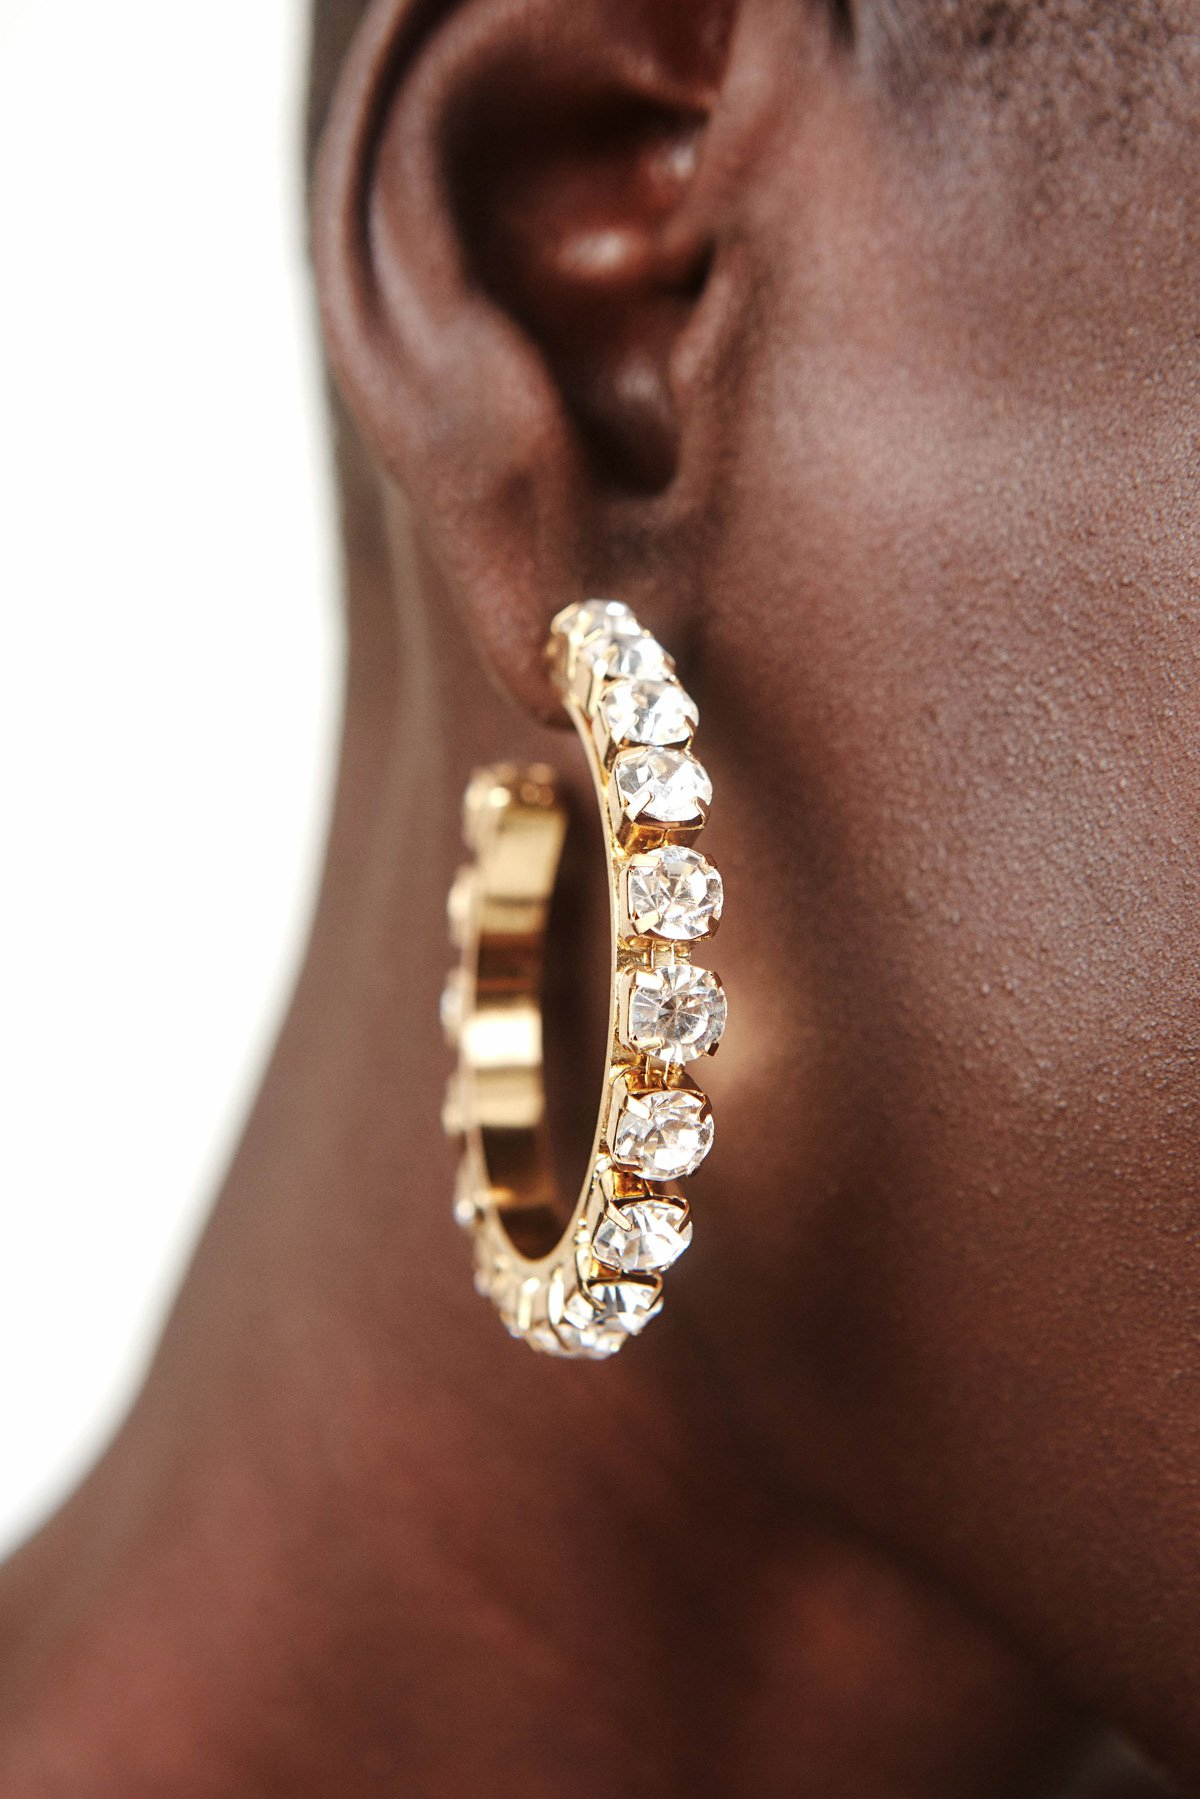 2-inch classic gold round hoop earrings crafted of polished brass set with shimmering oversized white Preciosa crystals. Imported.